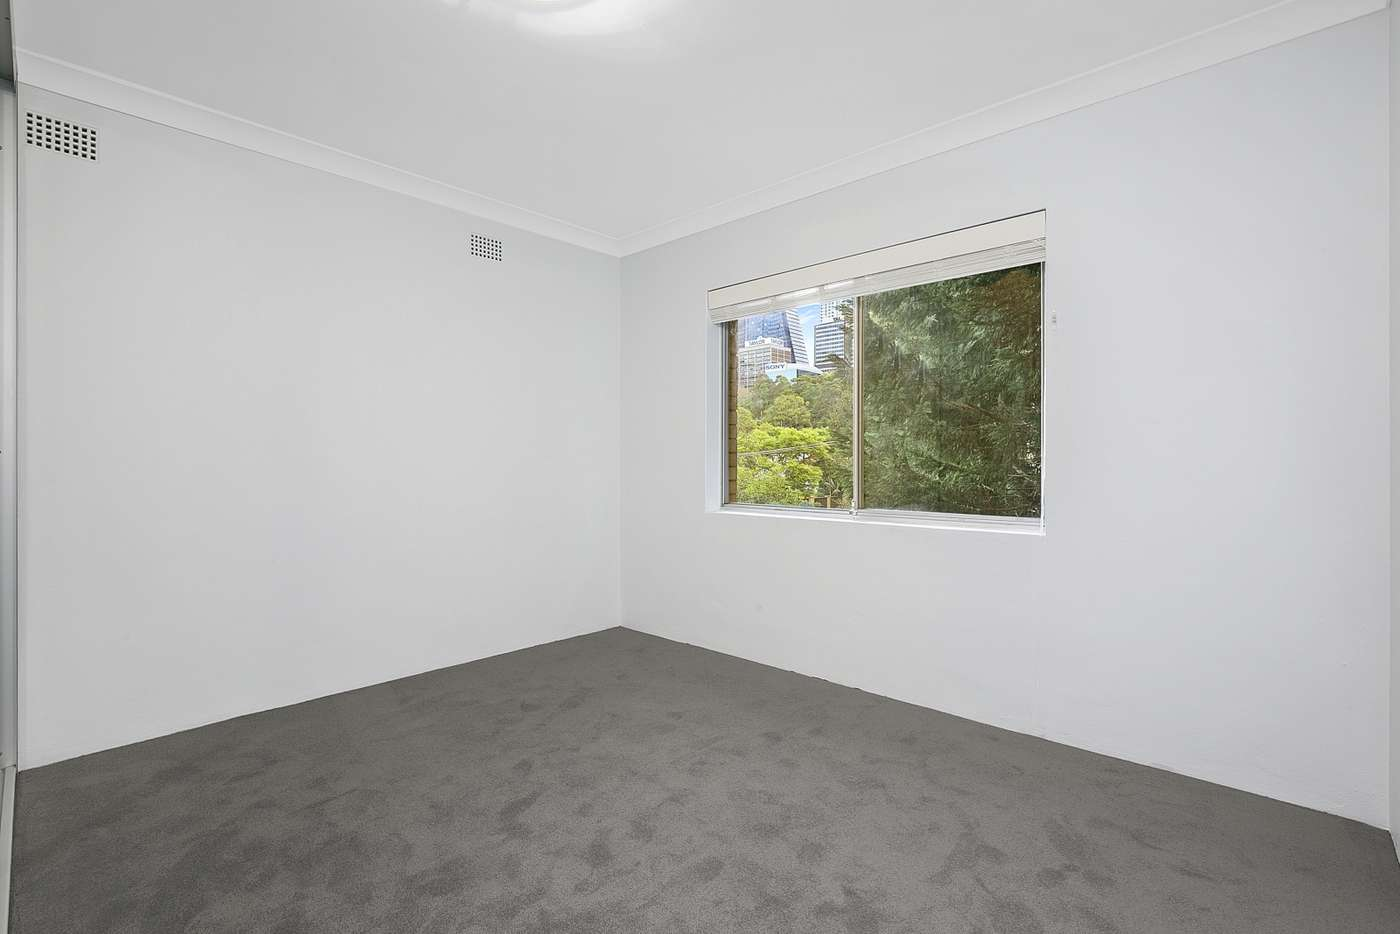 Sixth view of Homely apartment listing, 11/30 Eaton Street, Neutral Bay NSW 2089